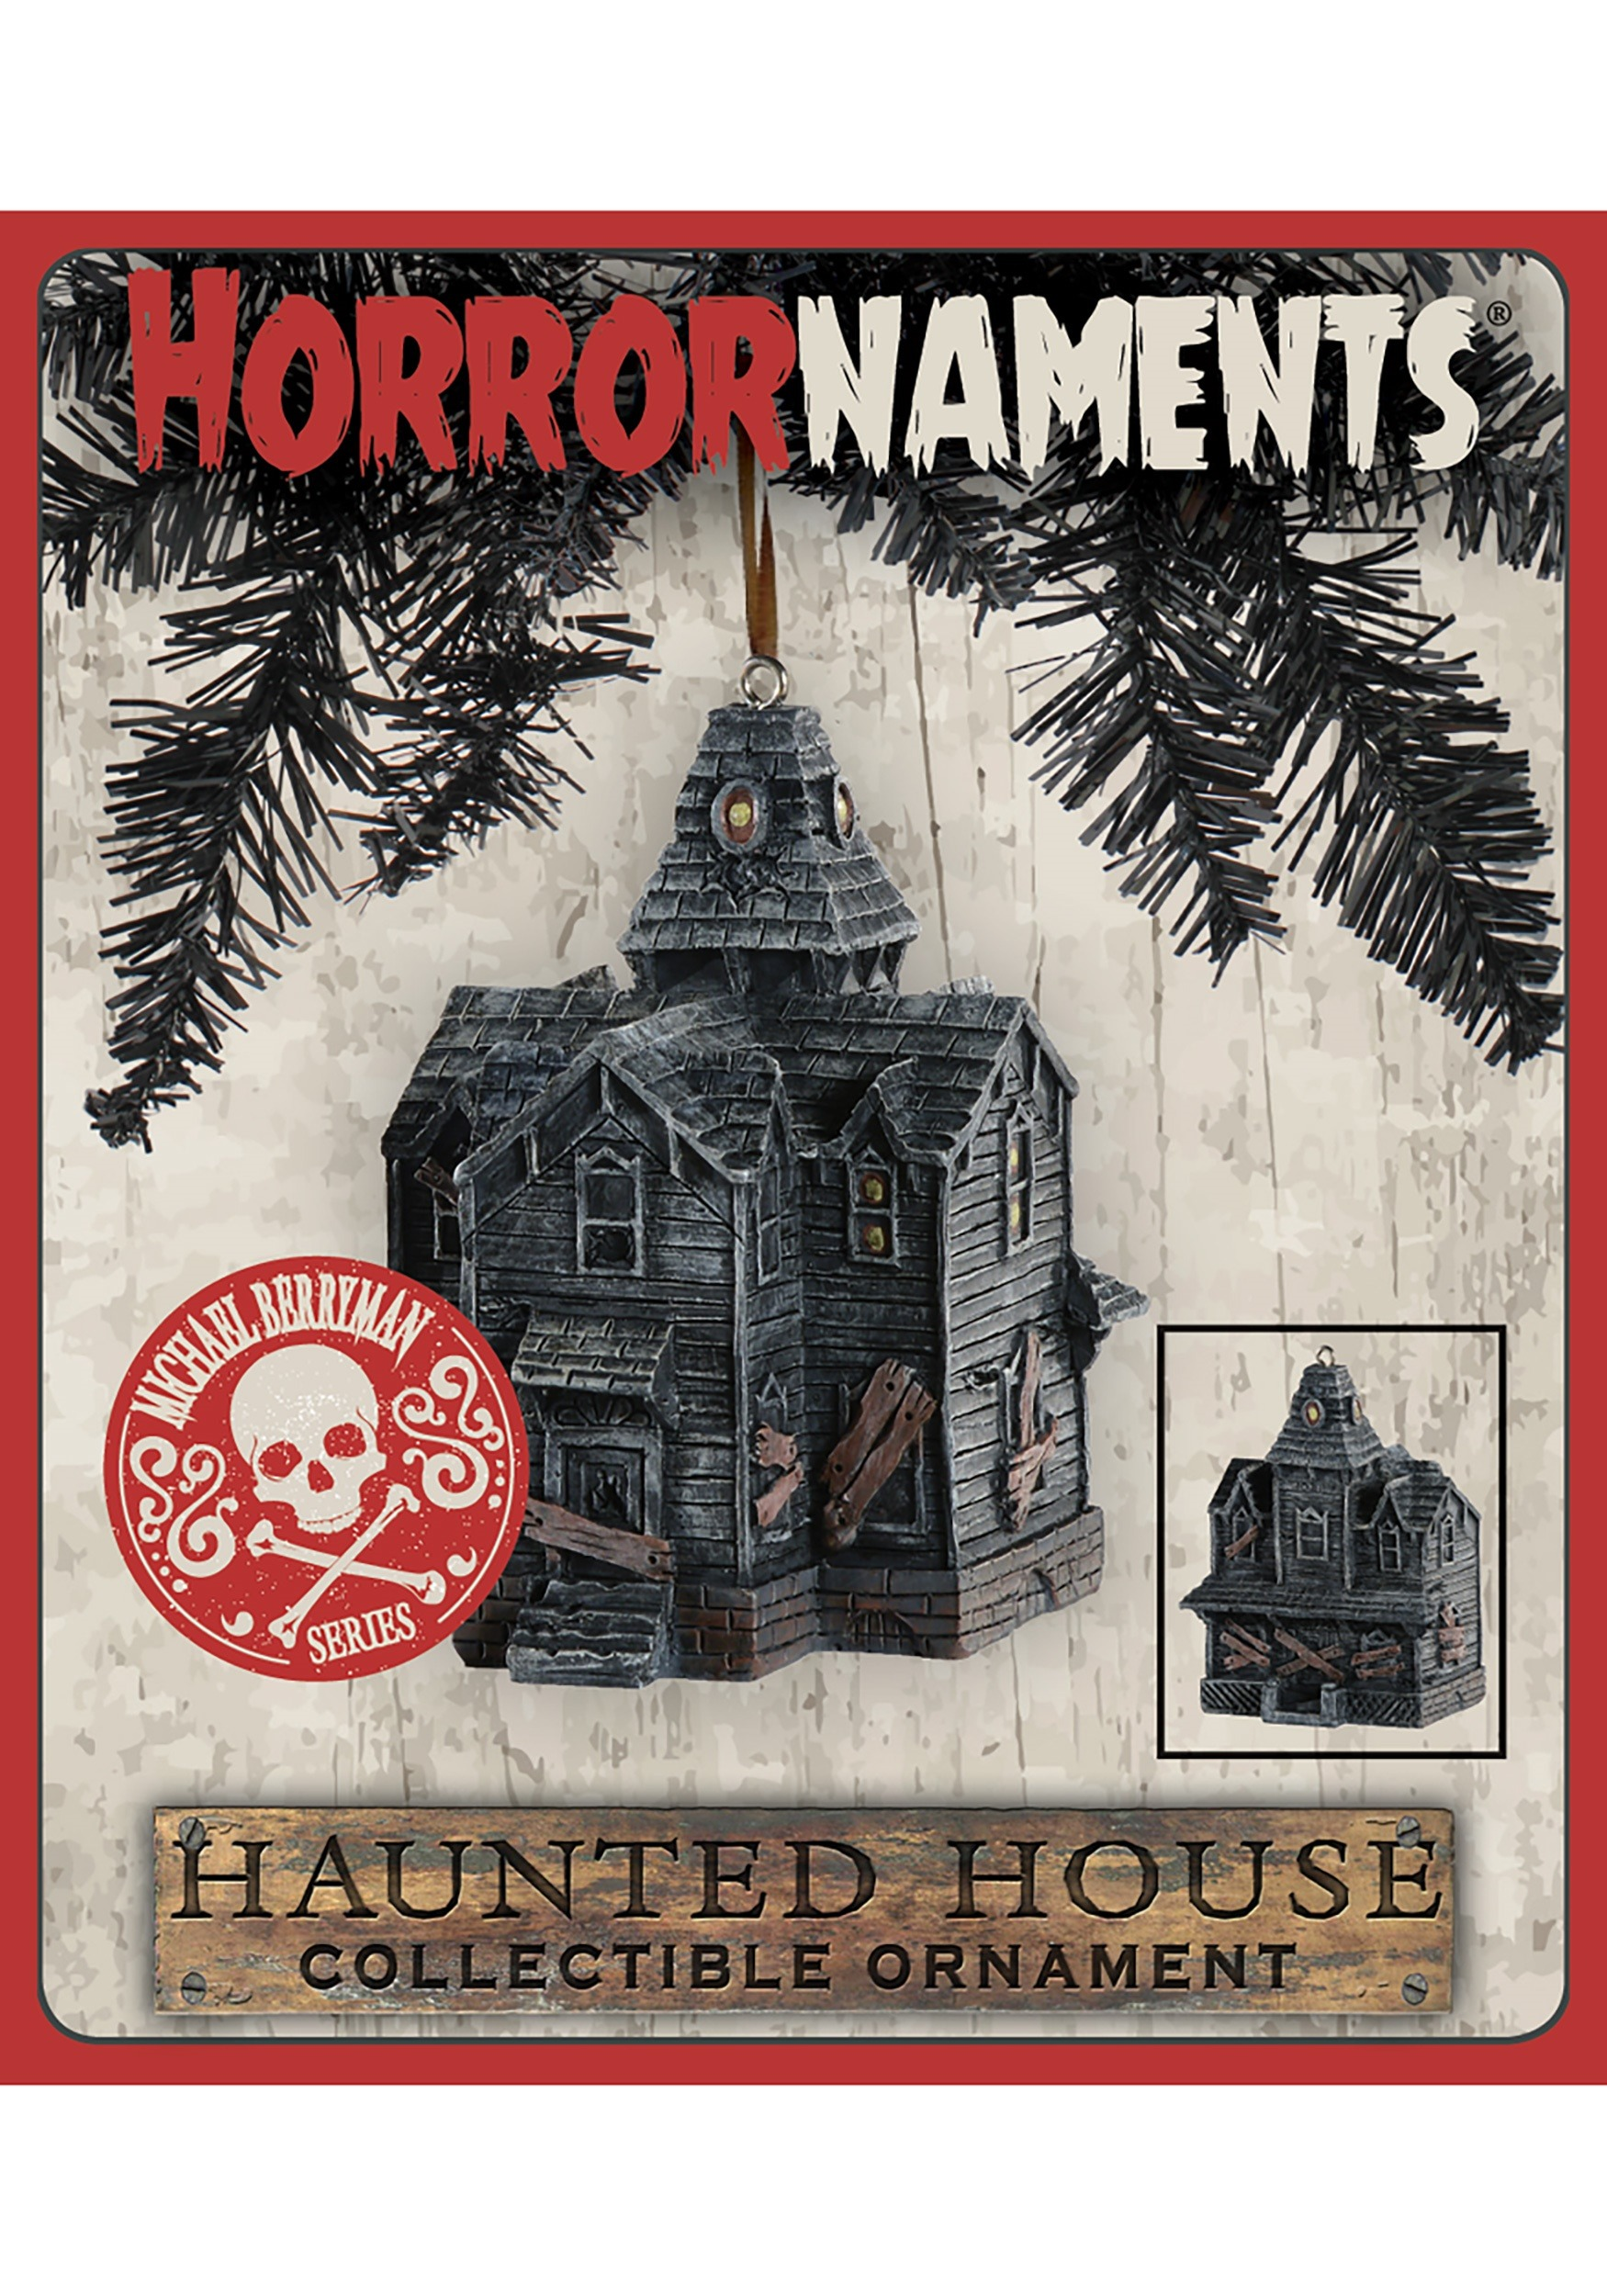 Haunted House Horrornaments Molded Ornament Michael Berryman